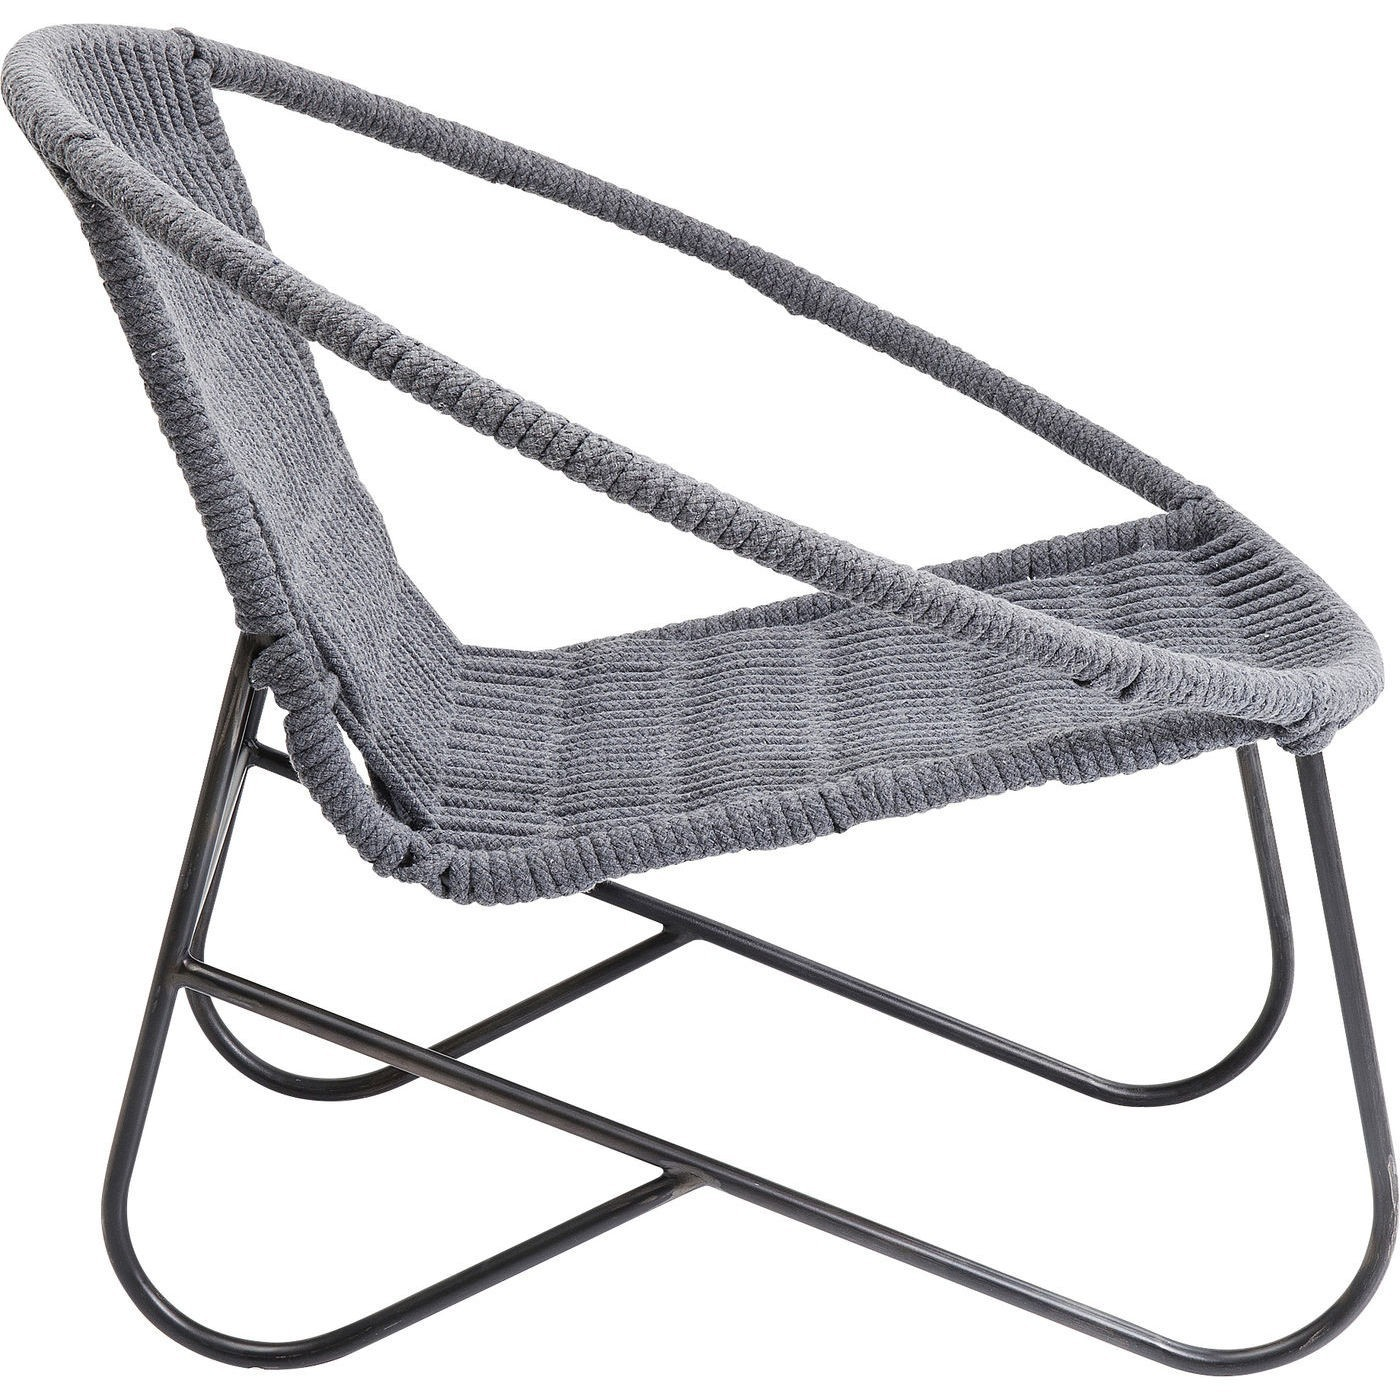 Chaise avec accoudoirs Wilderness Kare Design